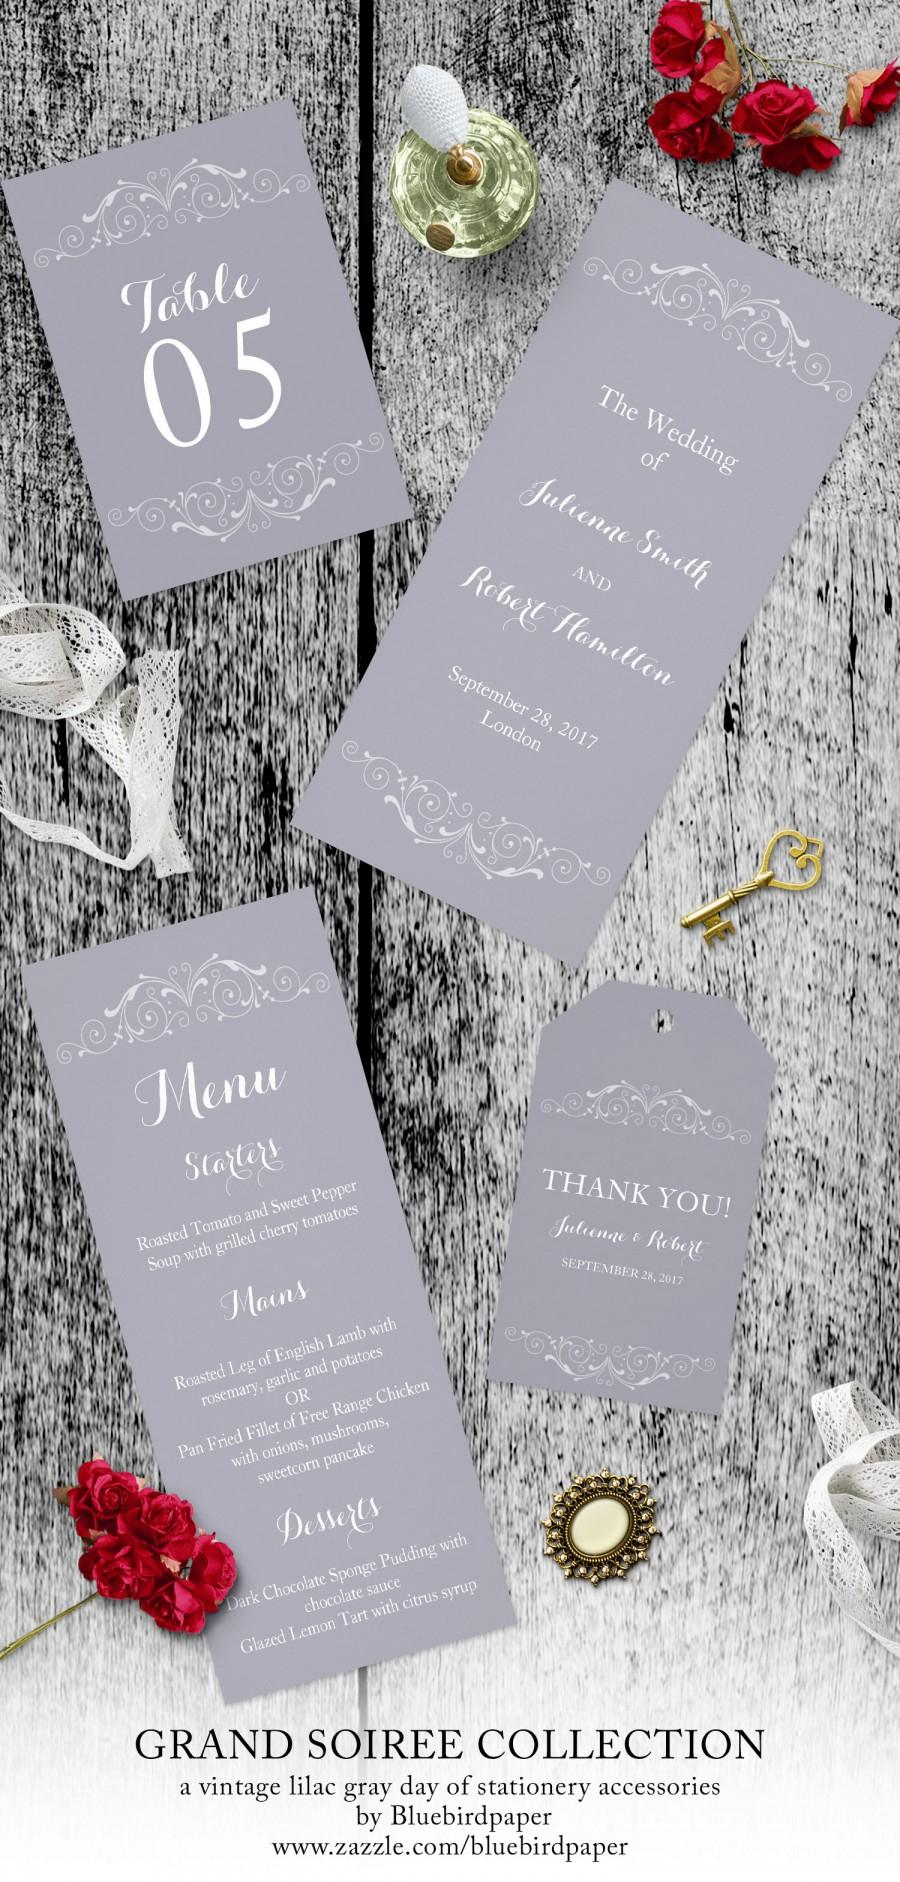 Wedding - Grand Soiree, a vintage lilac gray day of stationery accessories